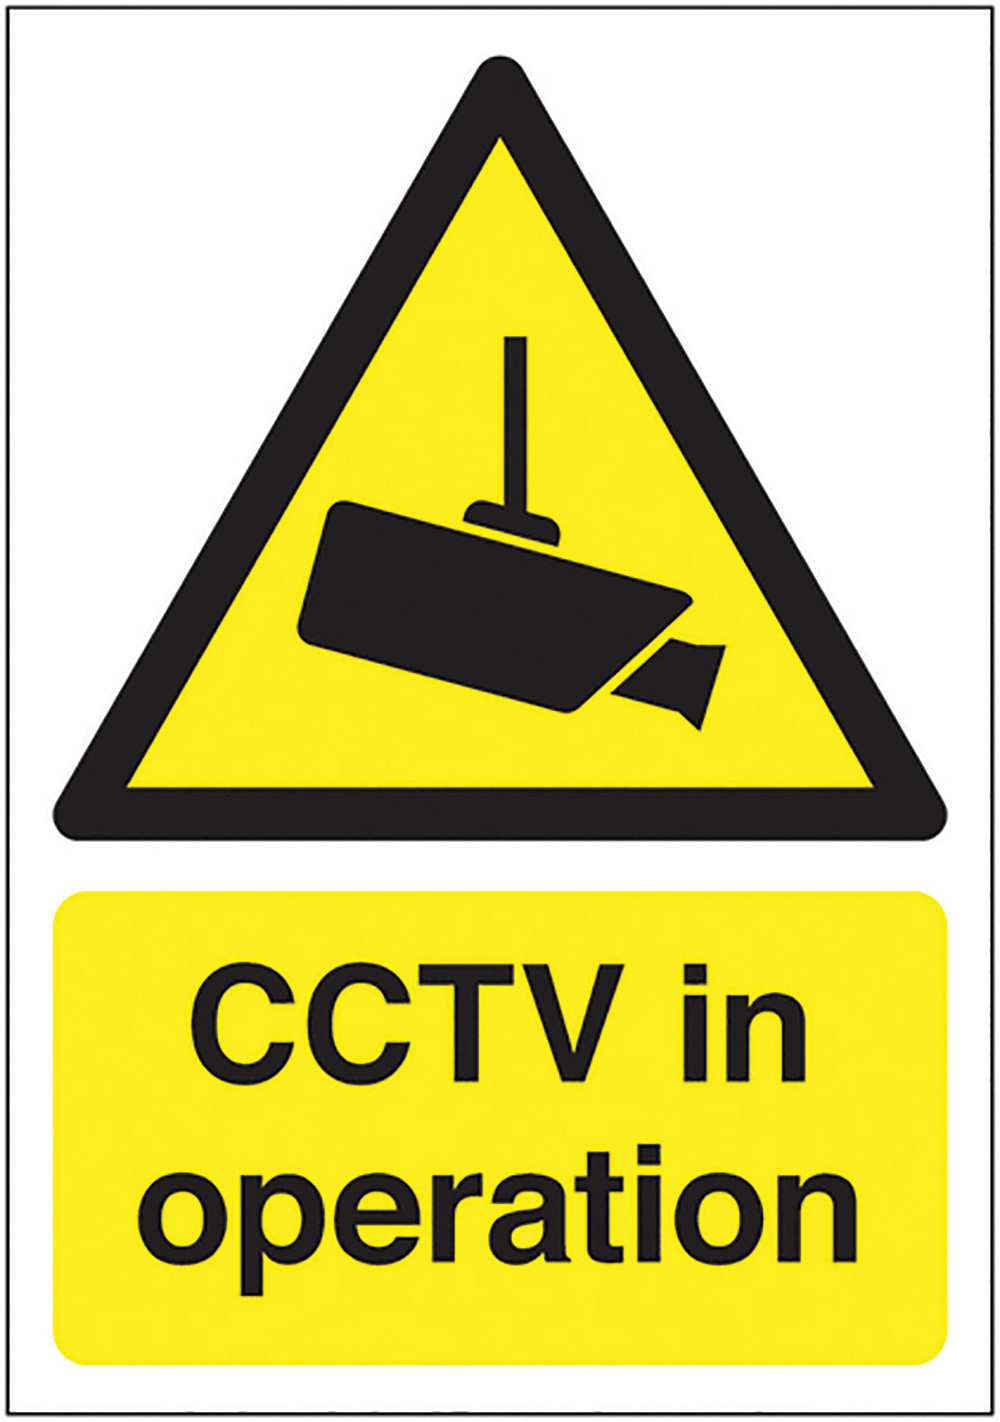 CCTV in Operation 300x500mm 1.2mm Rigid Plastic Safety Sign